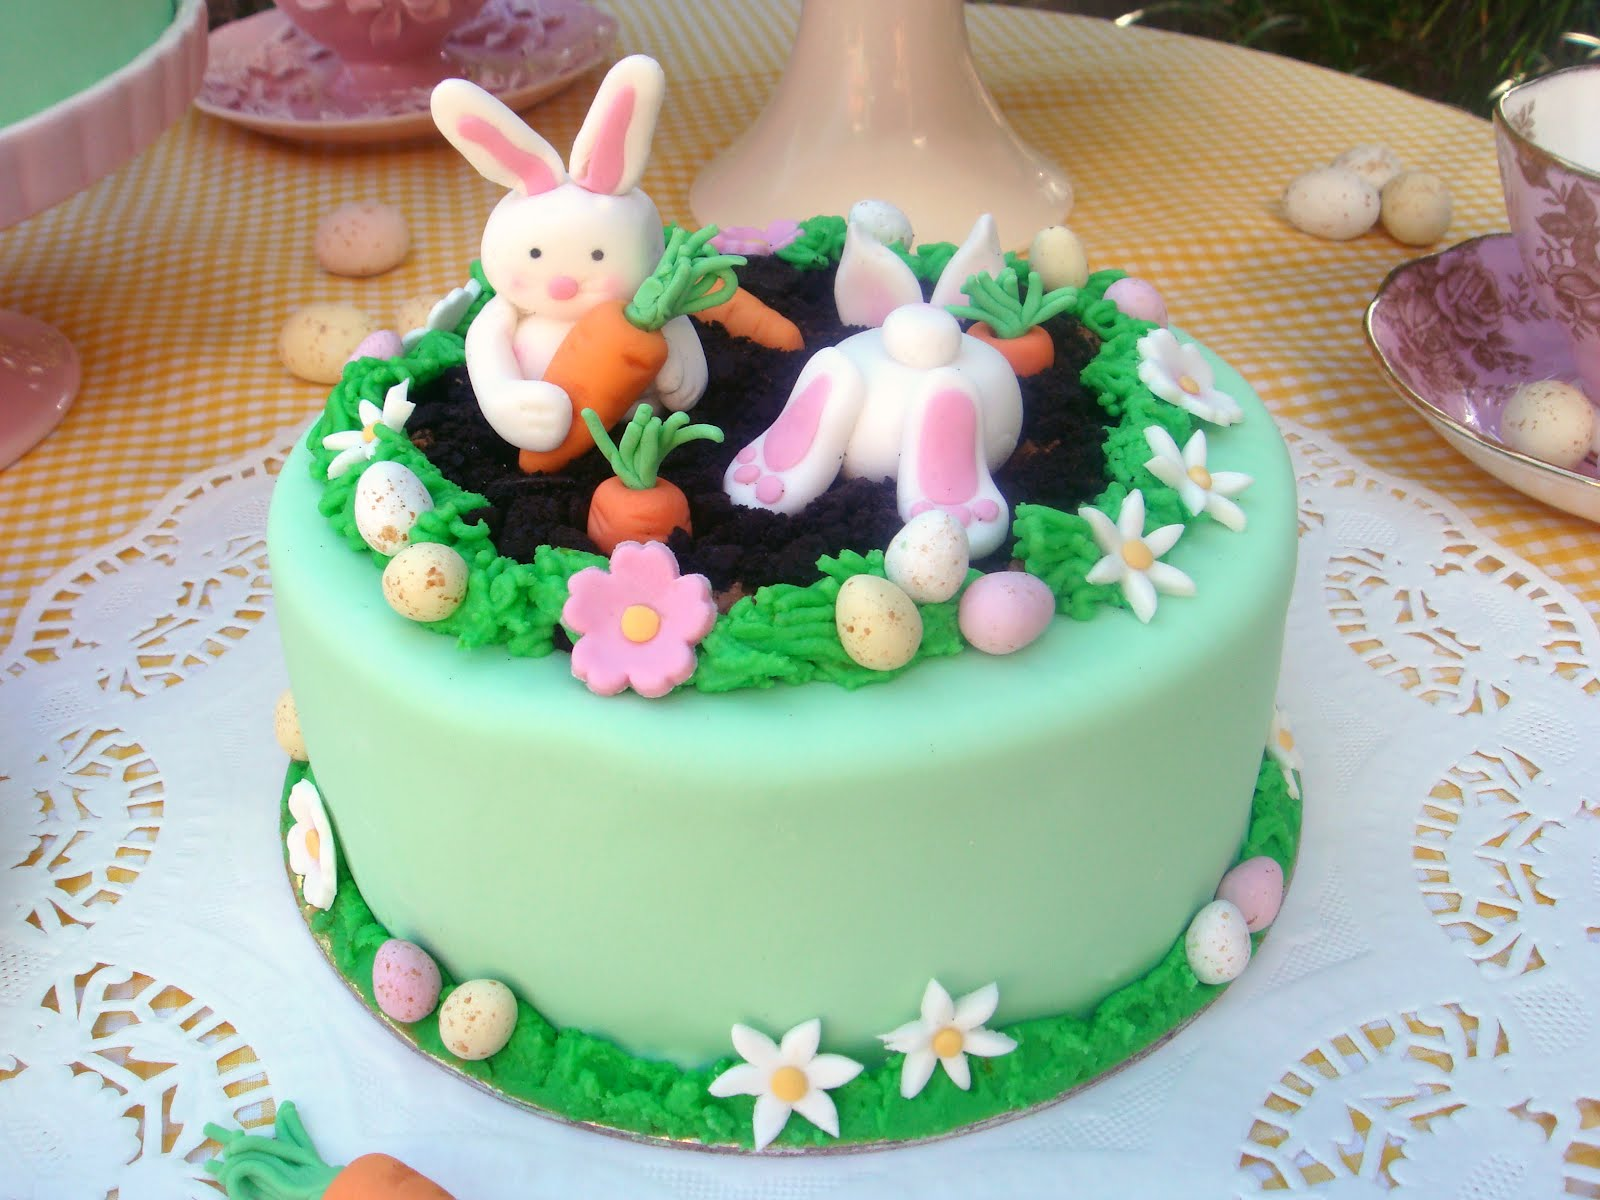 Easter Cake Design Ideas : butter hearts sugar: Cute Easter Cakes